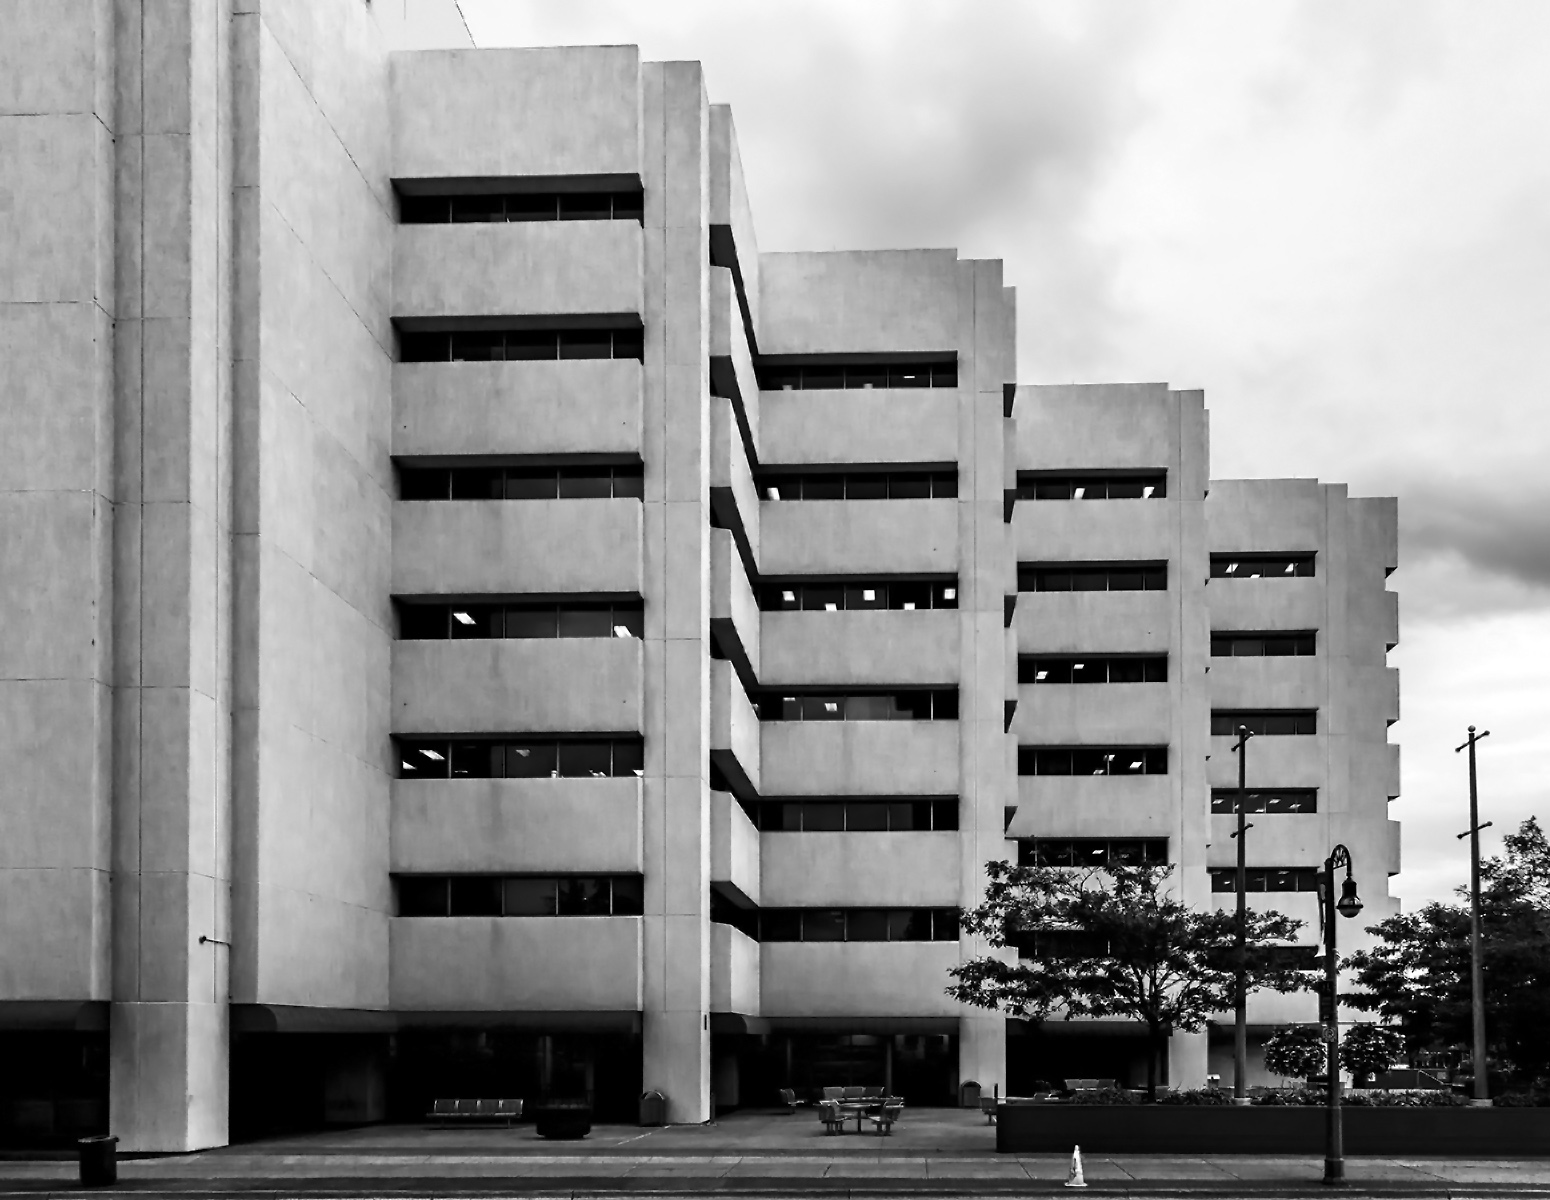 20151107. Blocks of Brutalism in perspective at Oshawa's Ontario